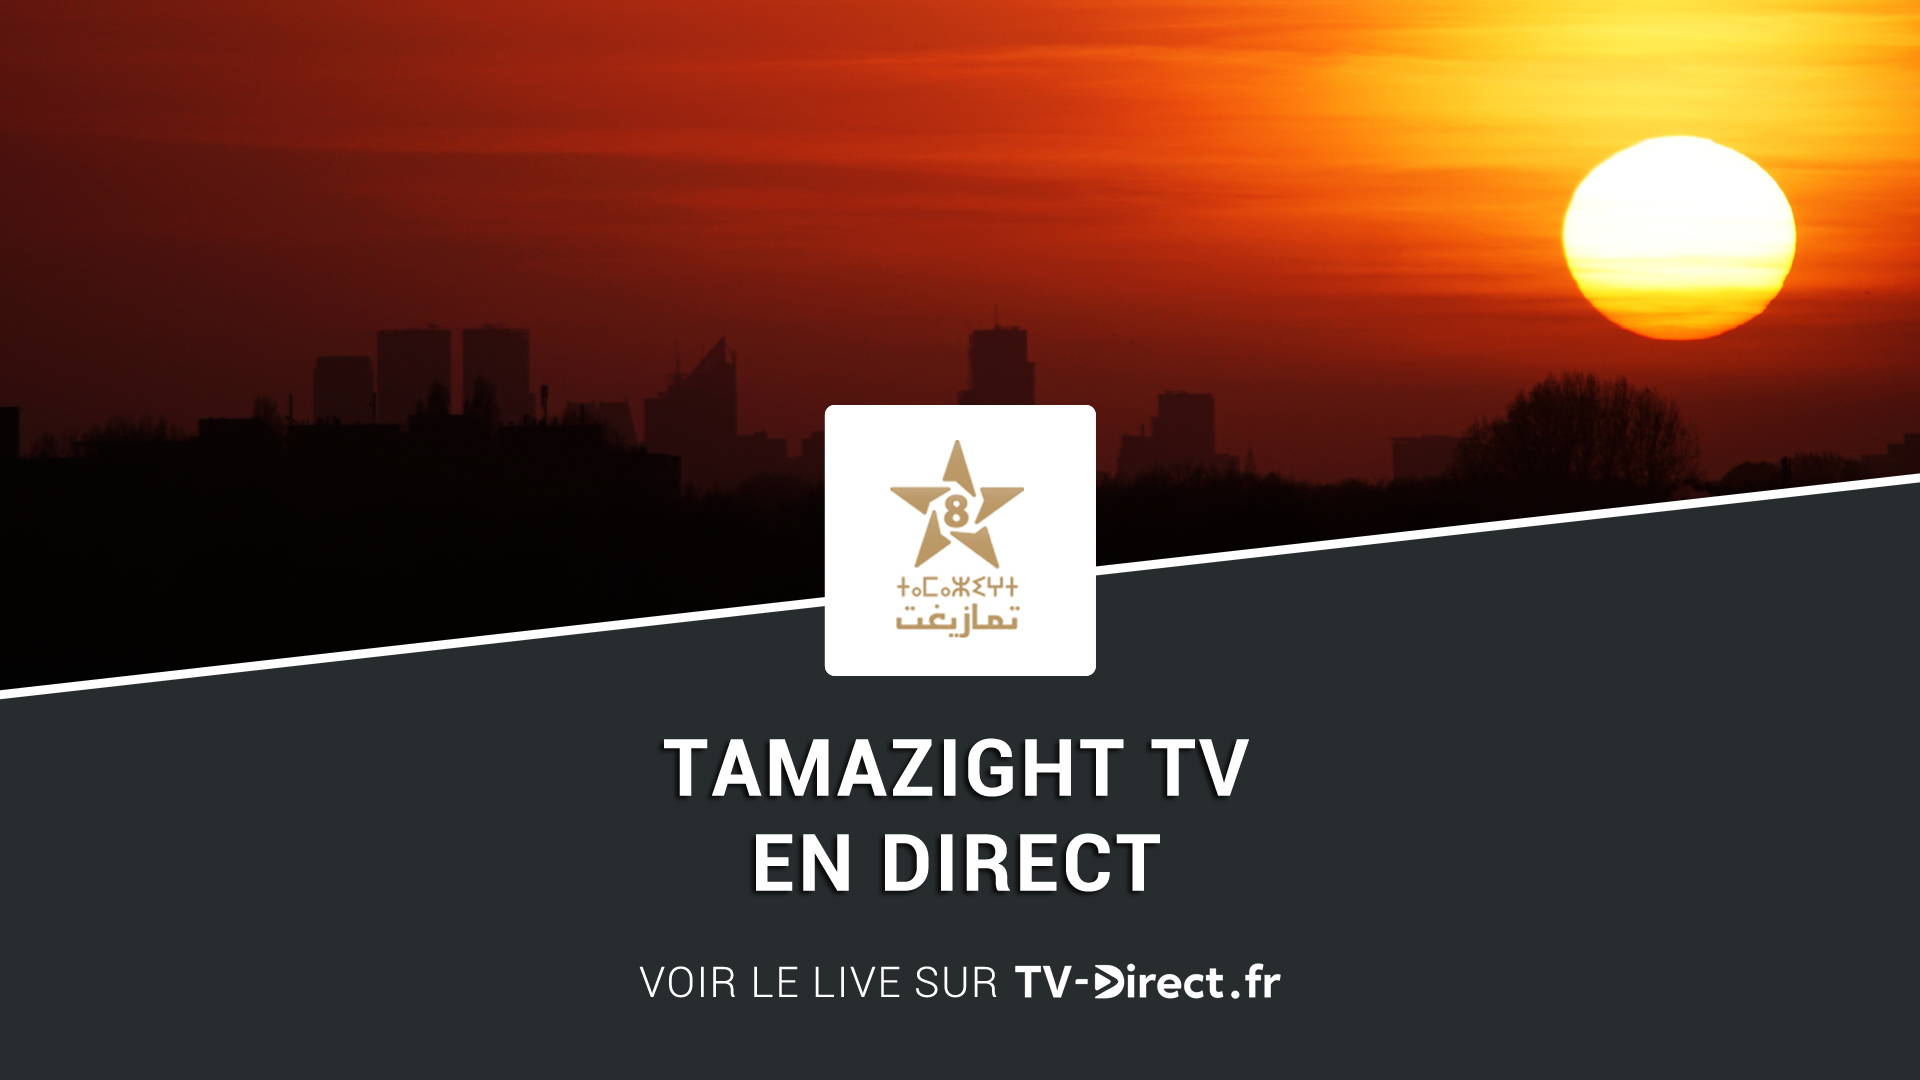 tamazight tv direct regarder tamazight tv live sur internet. Black Bedroom Furniture Sets. Home Design Ideas